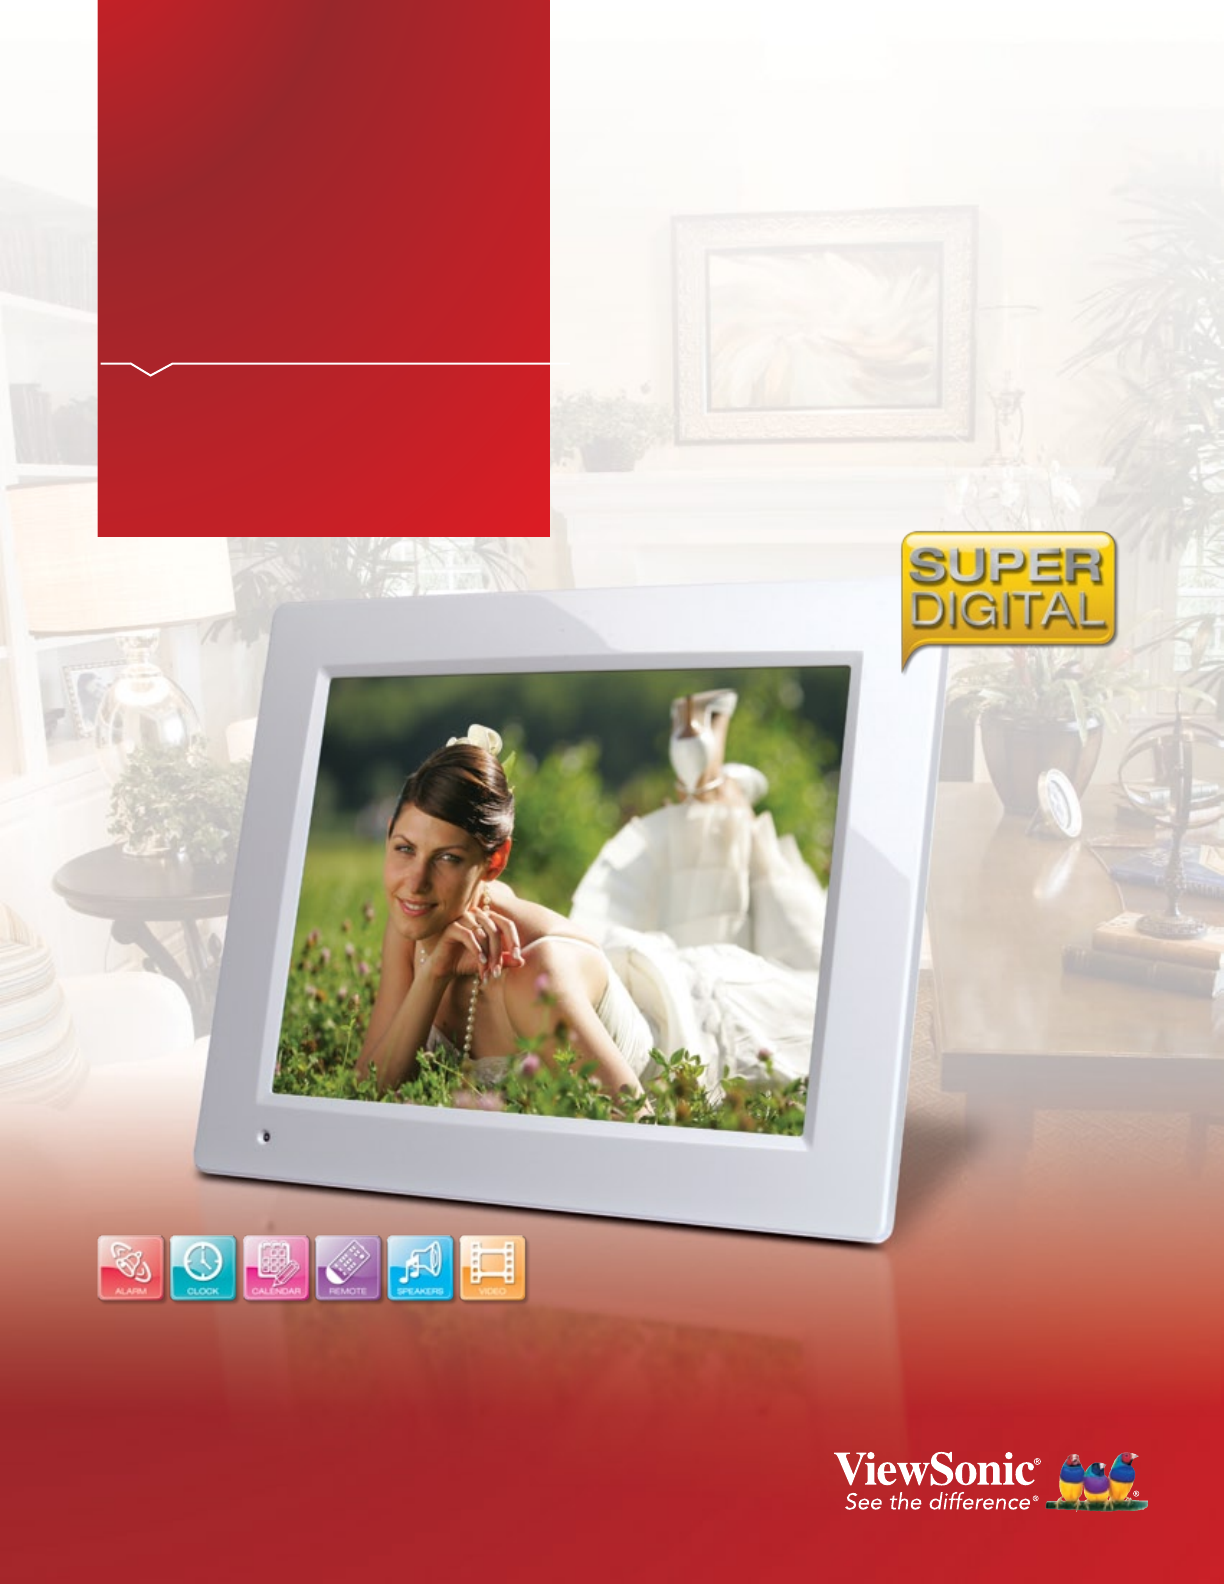 VFM153011 Digital Photo Frame  ViewSonic